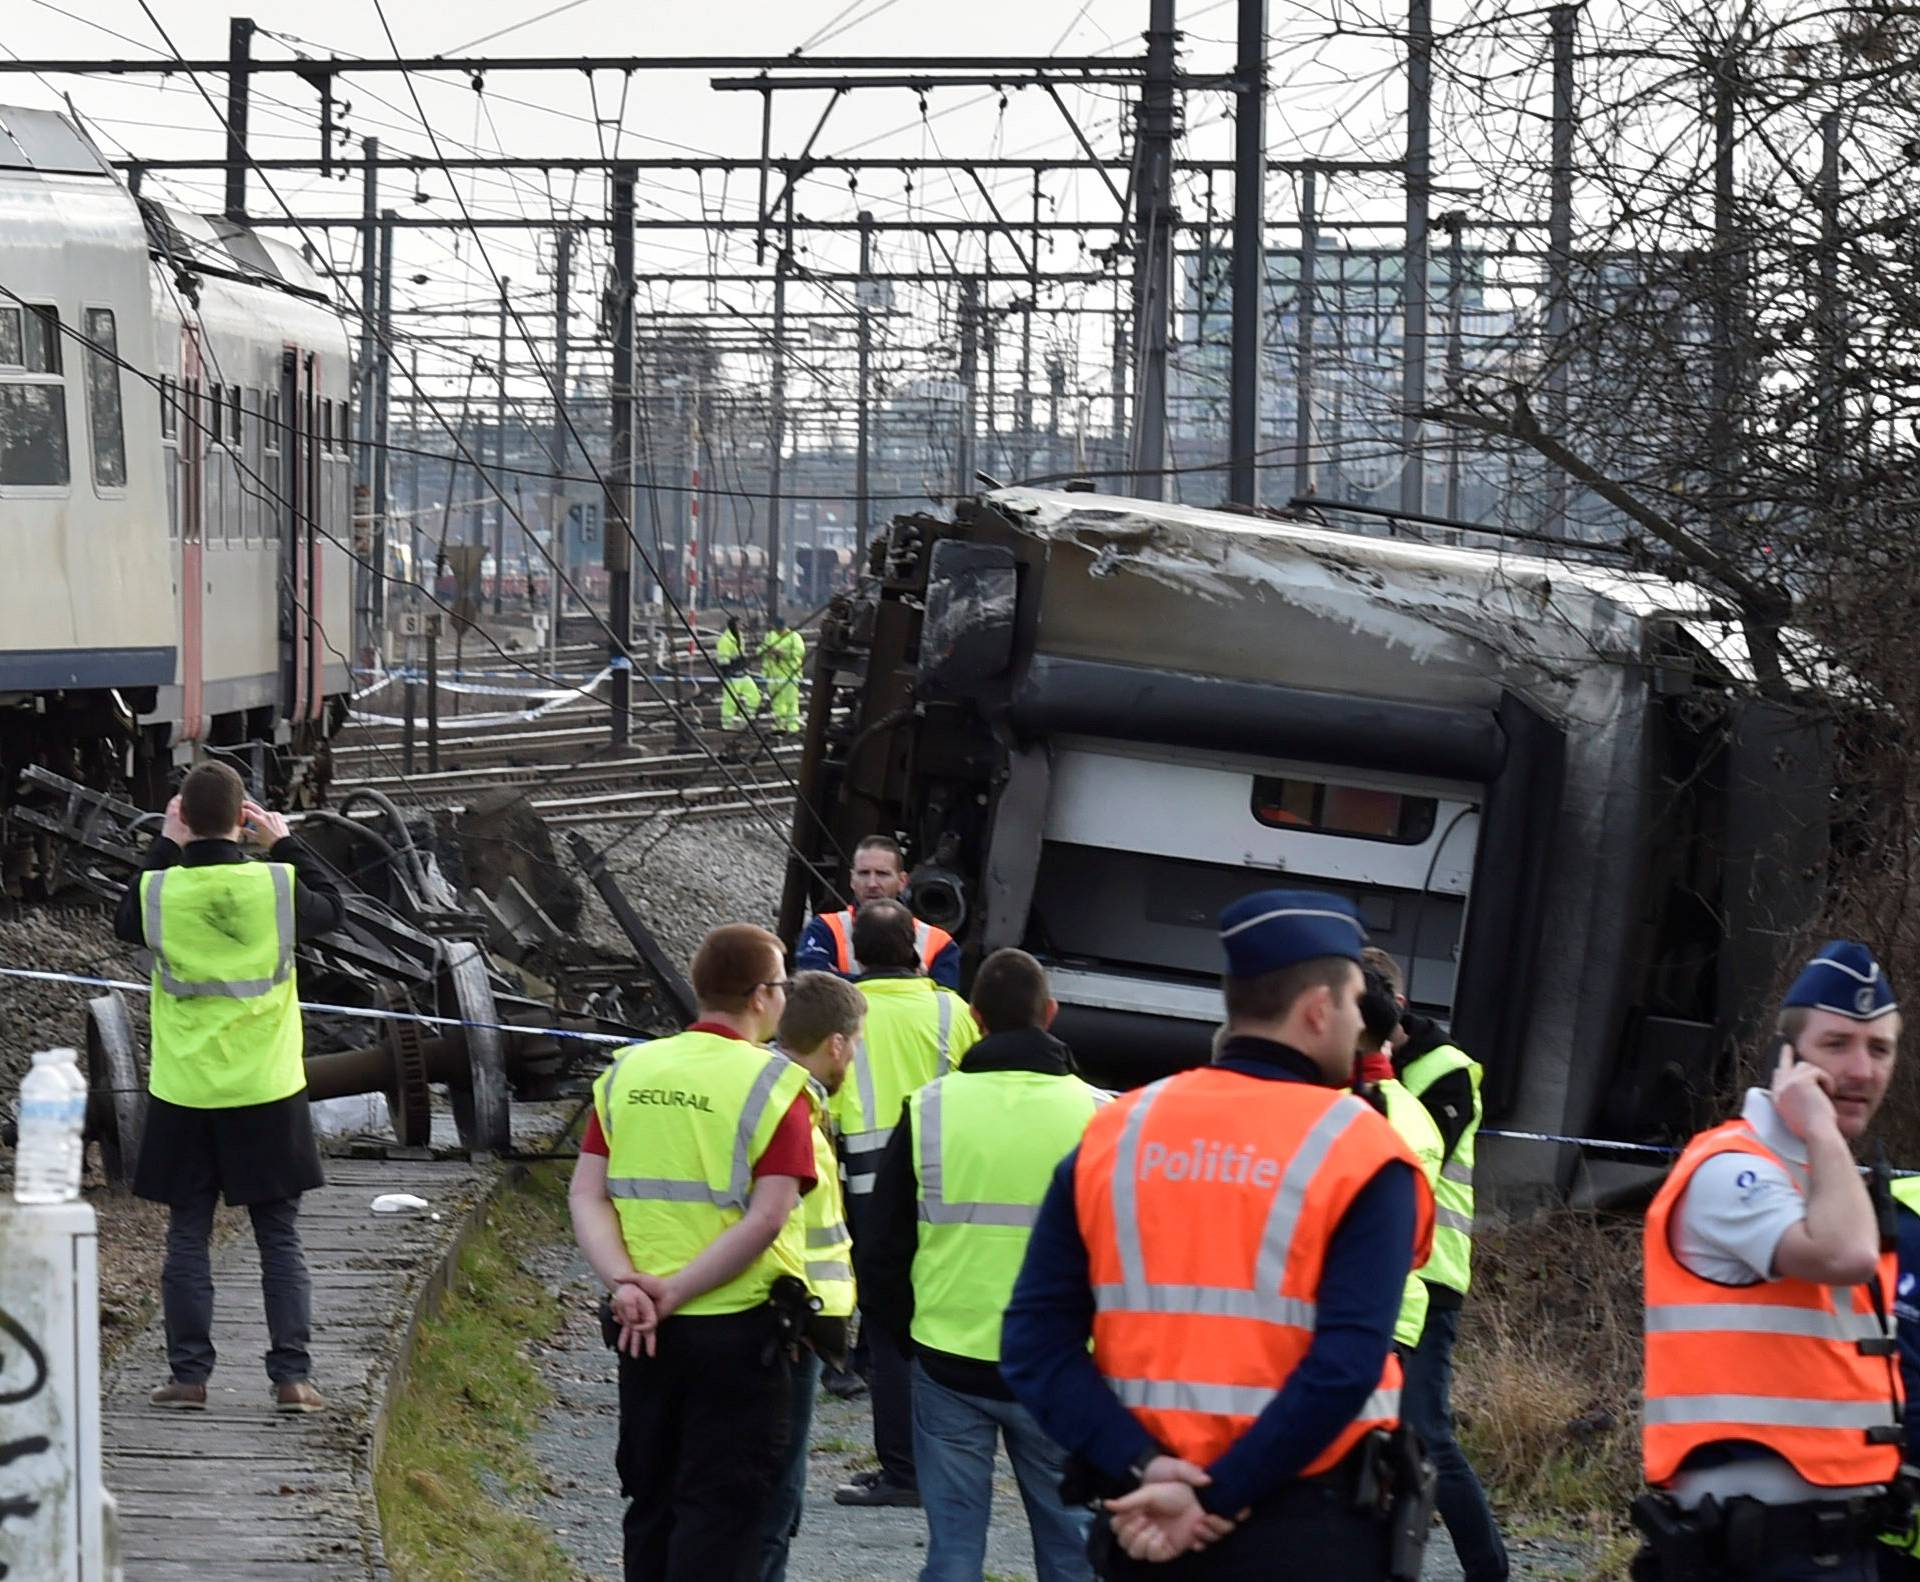 Rescuers and police officers stand next to the wreckage of a passenger train after it derailed in Kessel-Lo near Leuven